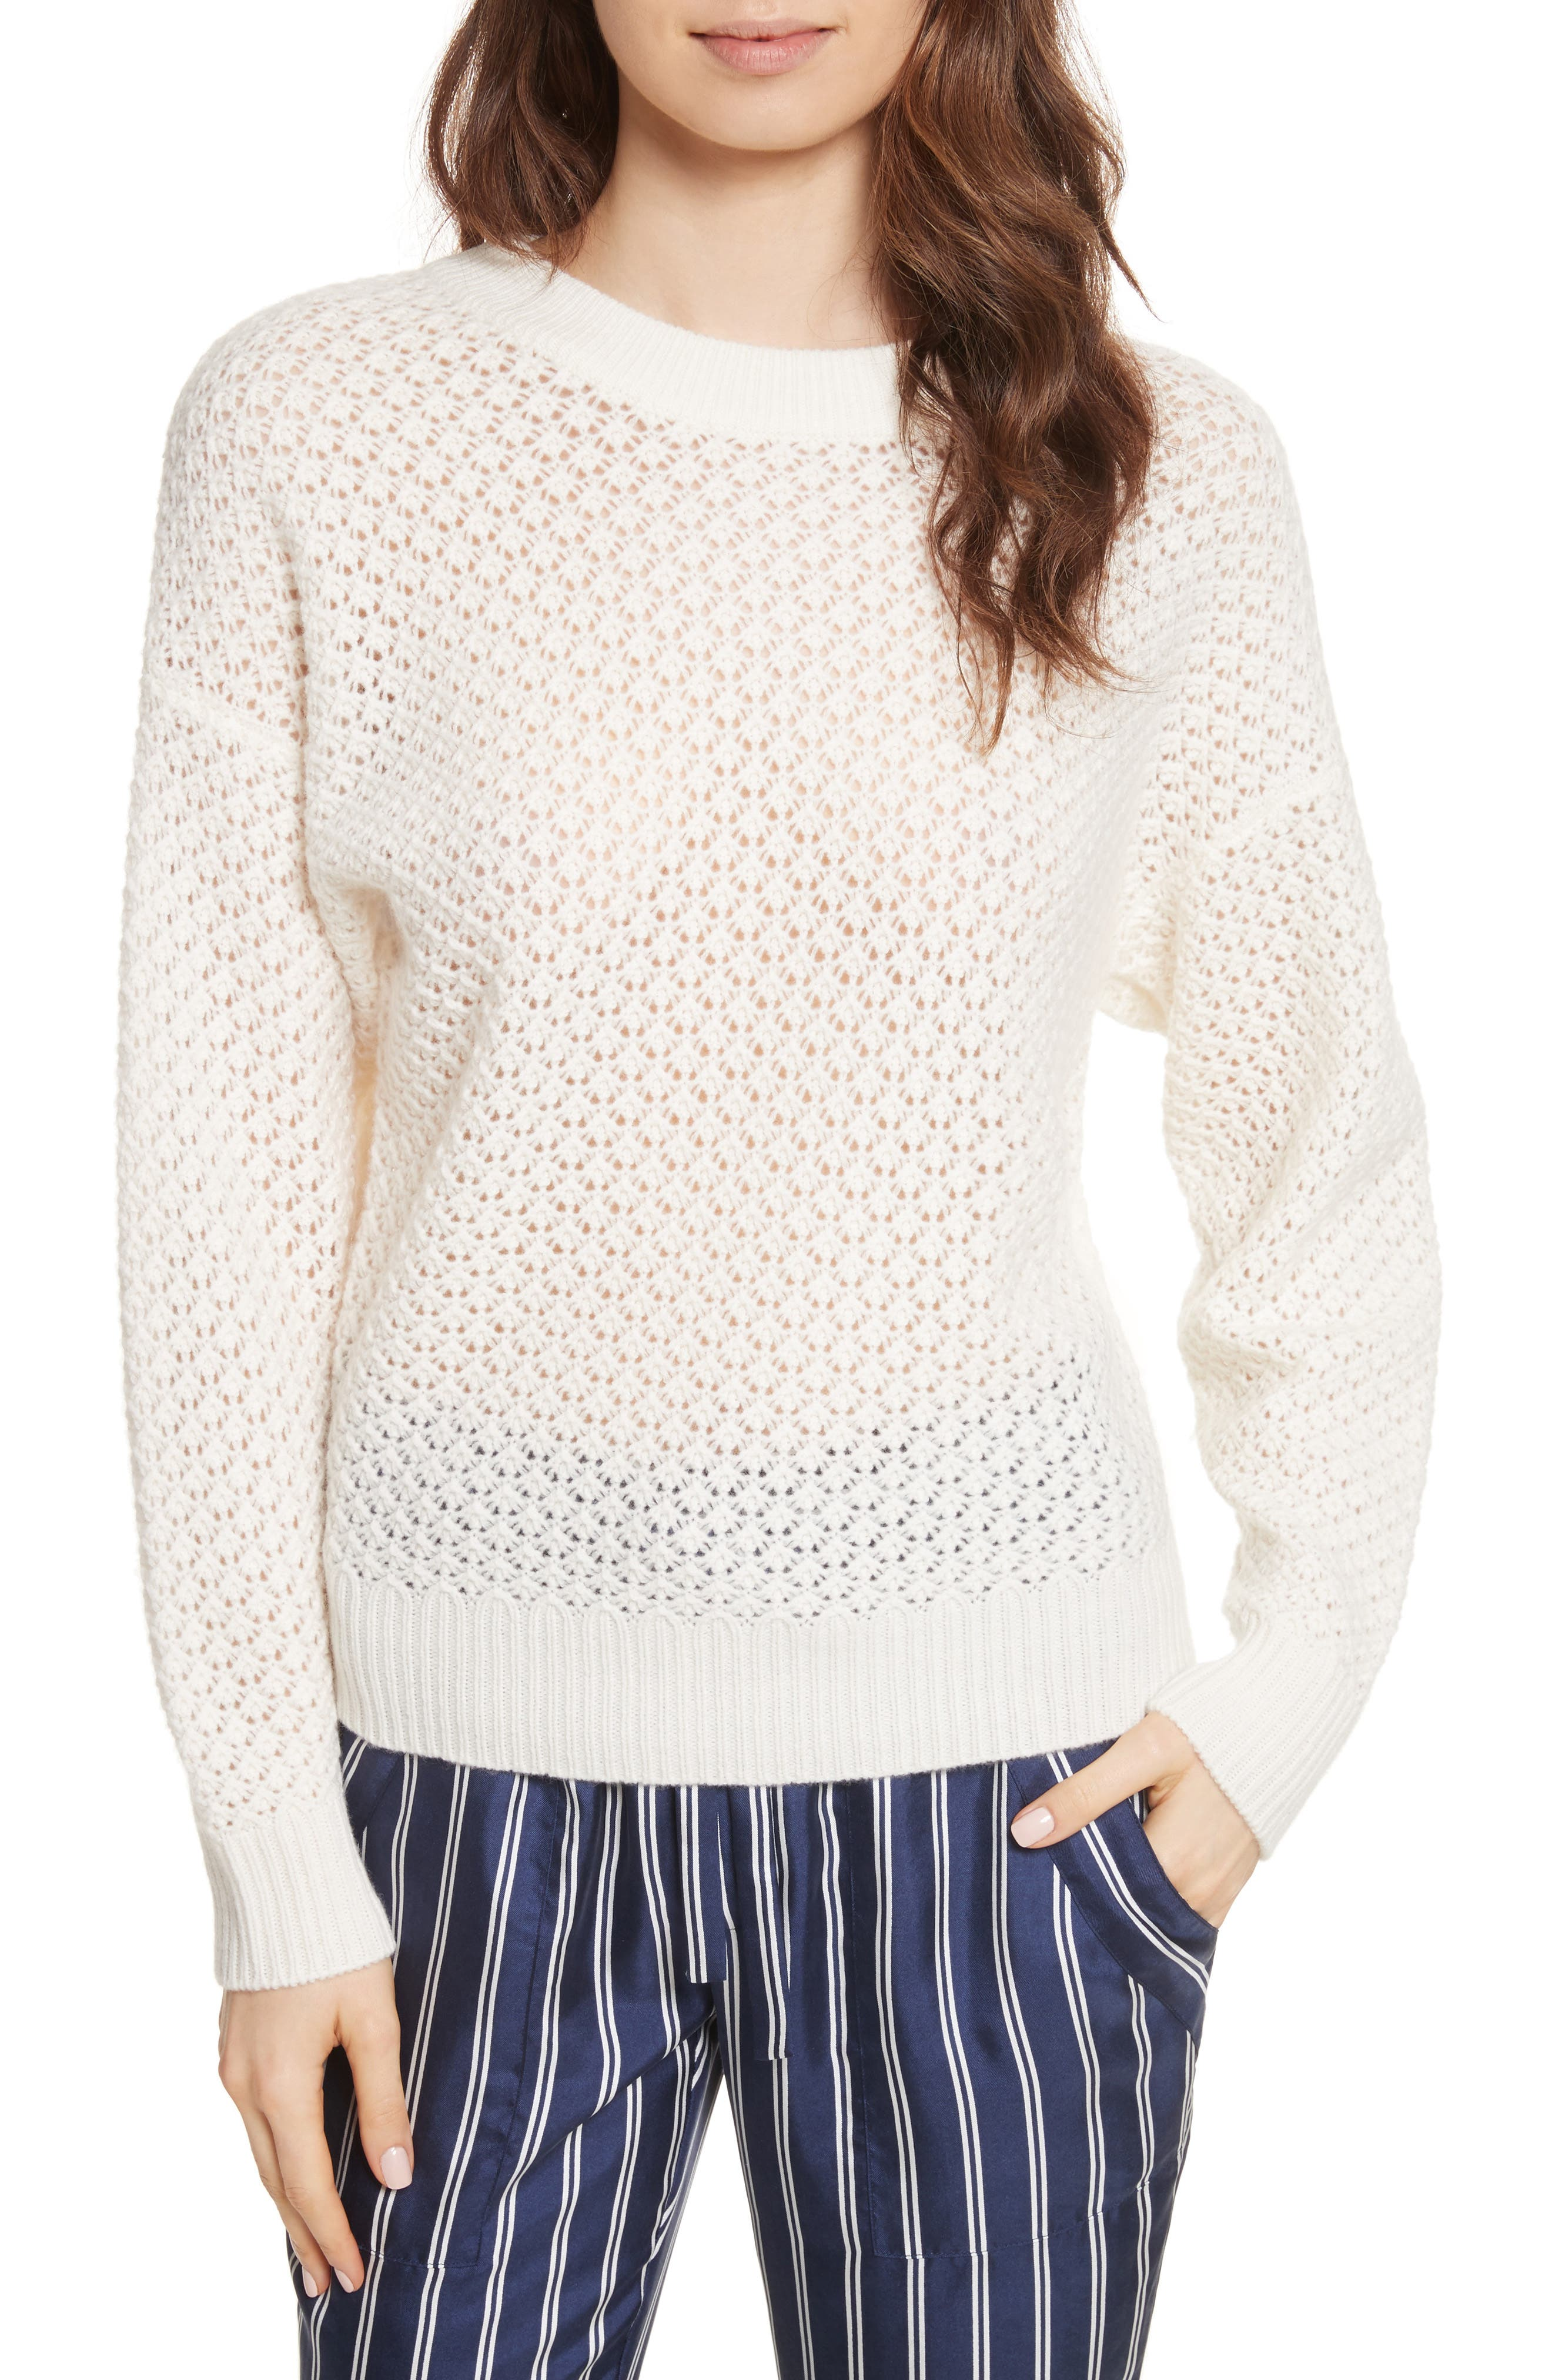 Vedis Wool & Cashmere Sweater,                             Main thumbnail 1, color,